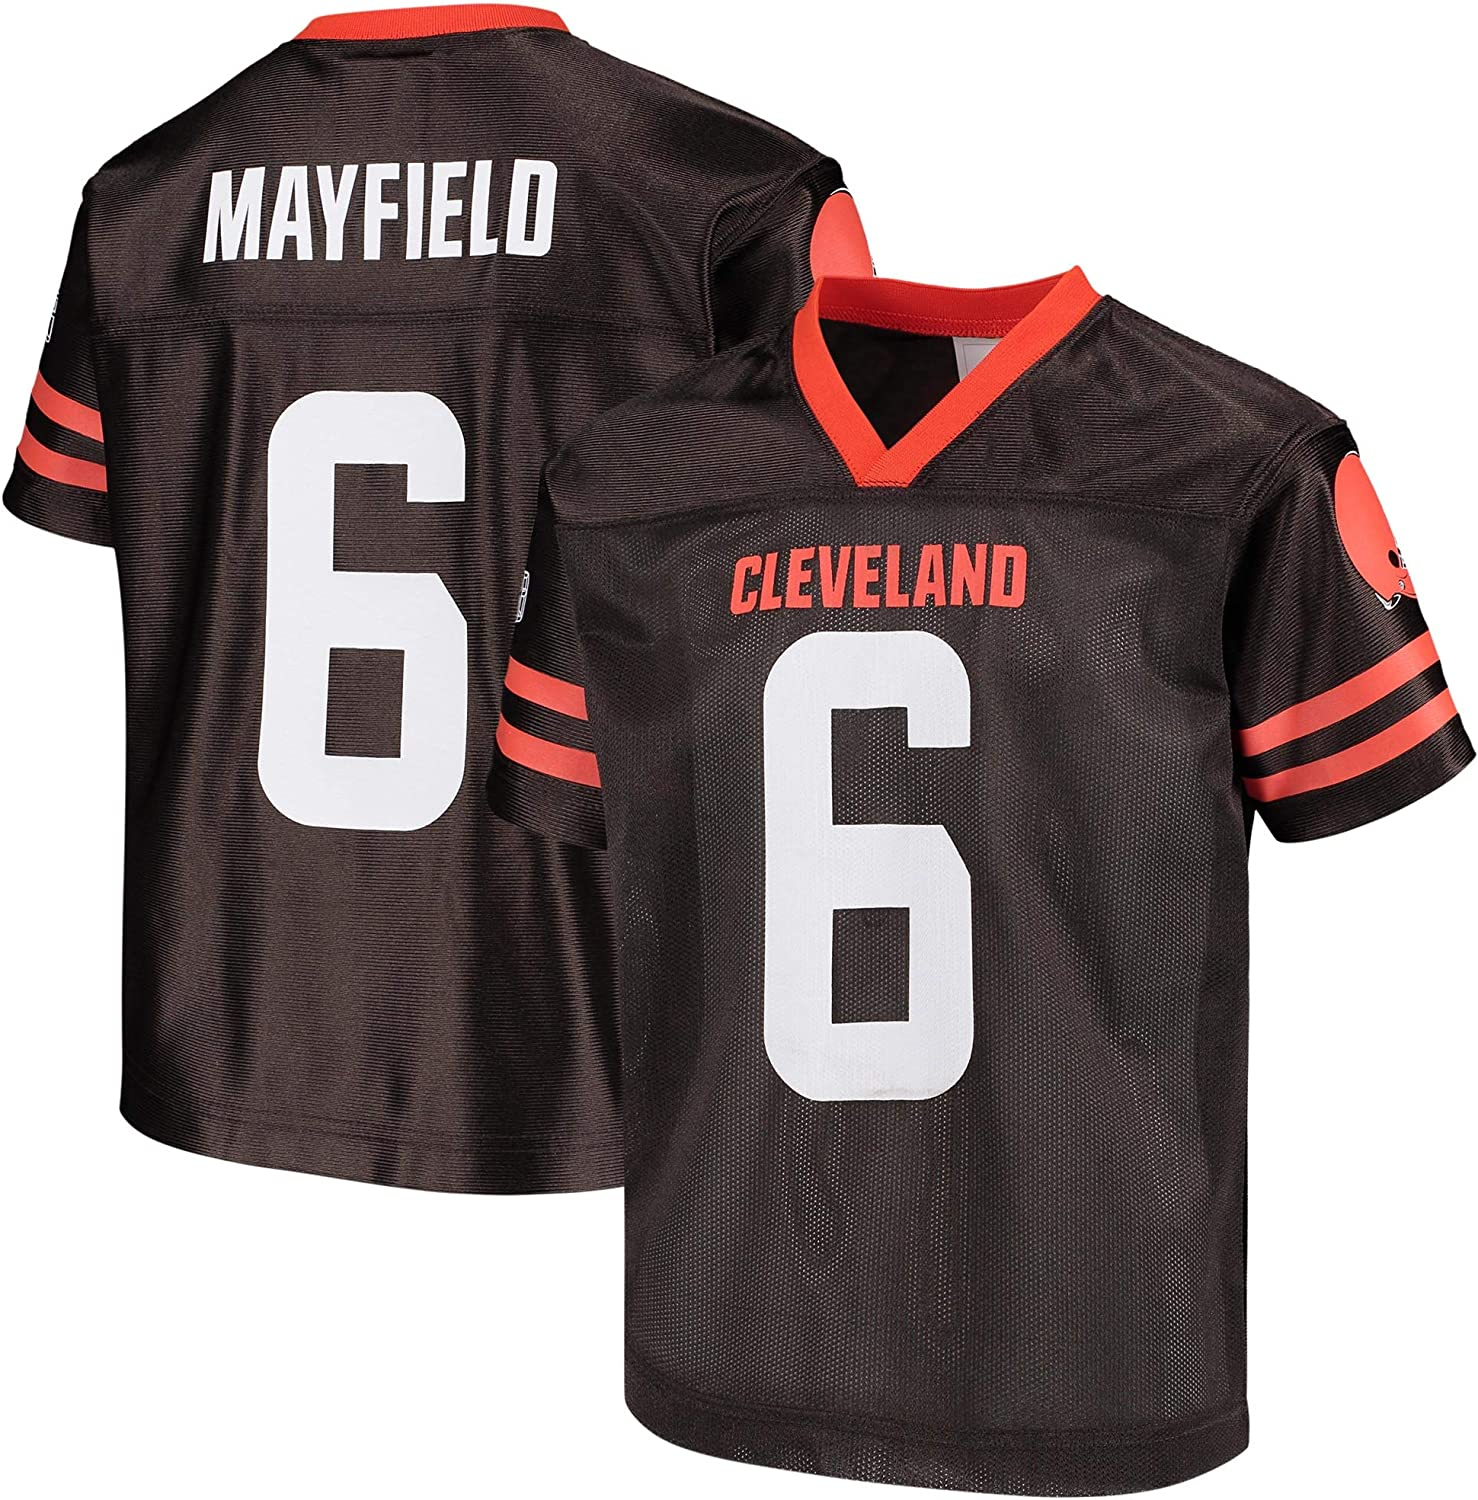 Baker Mayfield Cleveland Browns Brown #6 Youth 8-20 Home Player Jersey